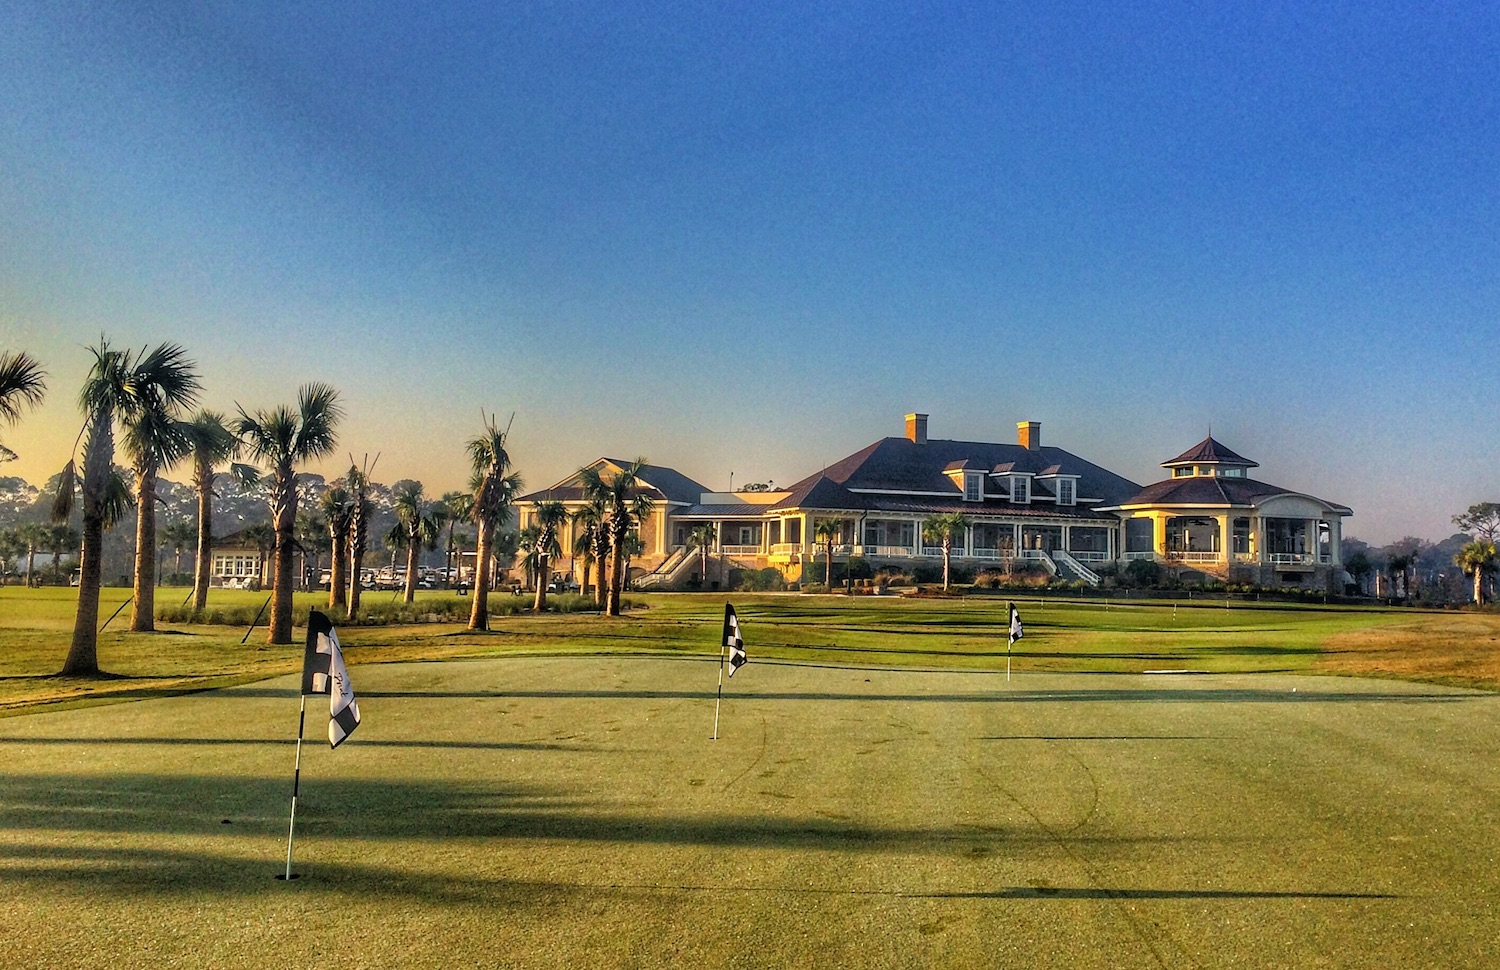 The short game practice facility at Sea Pines' Heron Point and Atlantic Dunes courses is both functional and scenic. (Brandon Tucker/Golf Advisor)